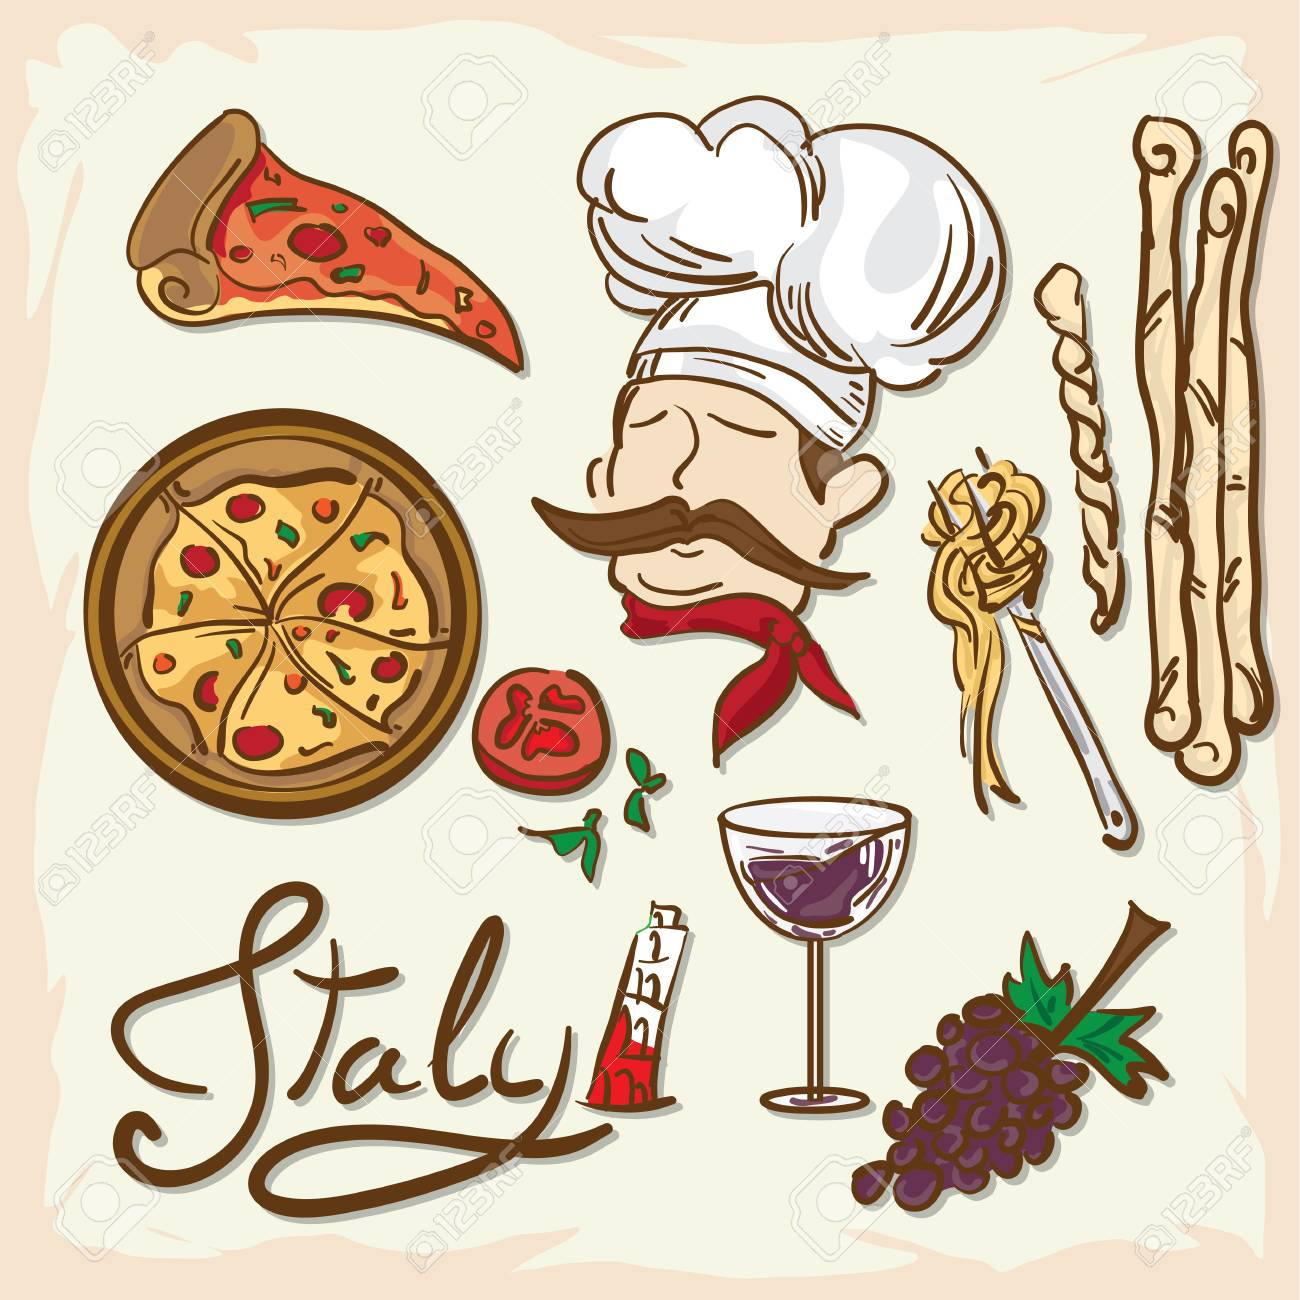 1300x1300 Italian Foods Drawing Graphic Design. Royalty Free Cliparts